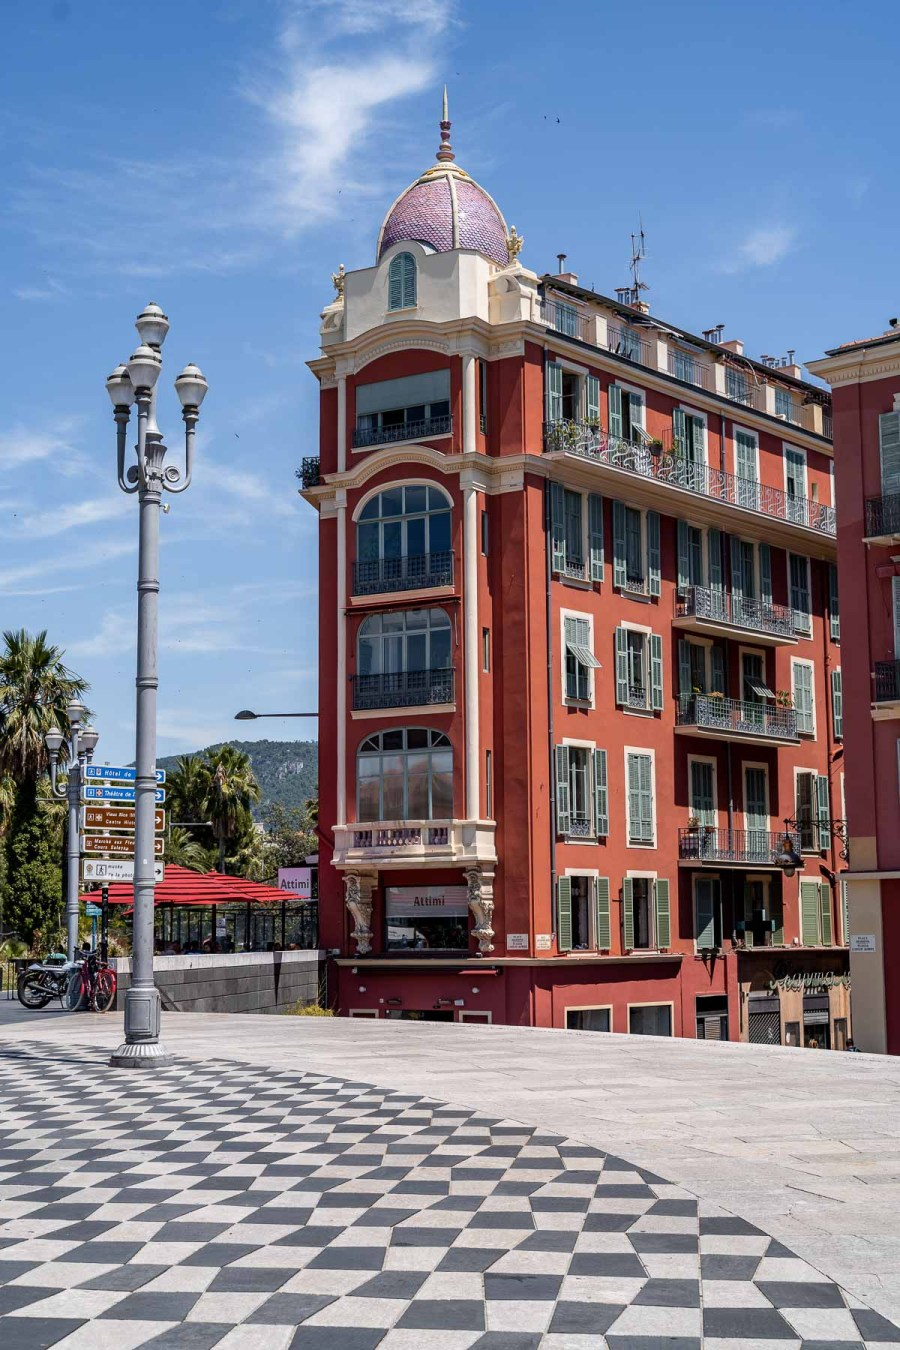 Place Massena is a must visit when spending one day in Nice, France